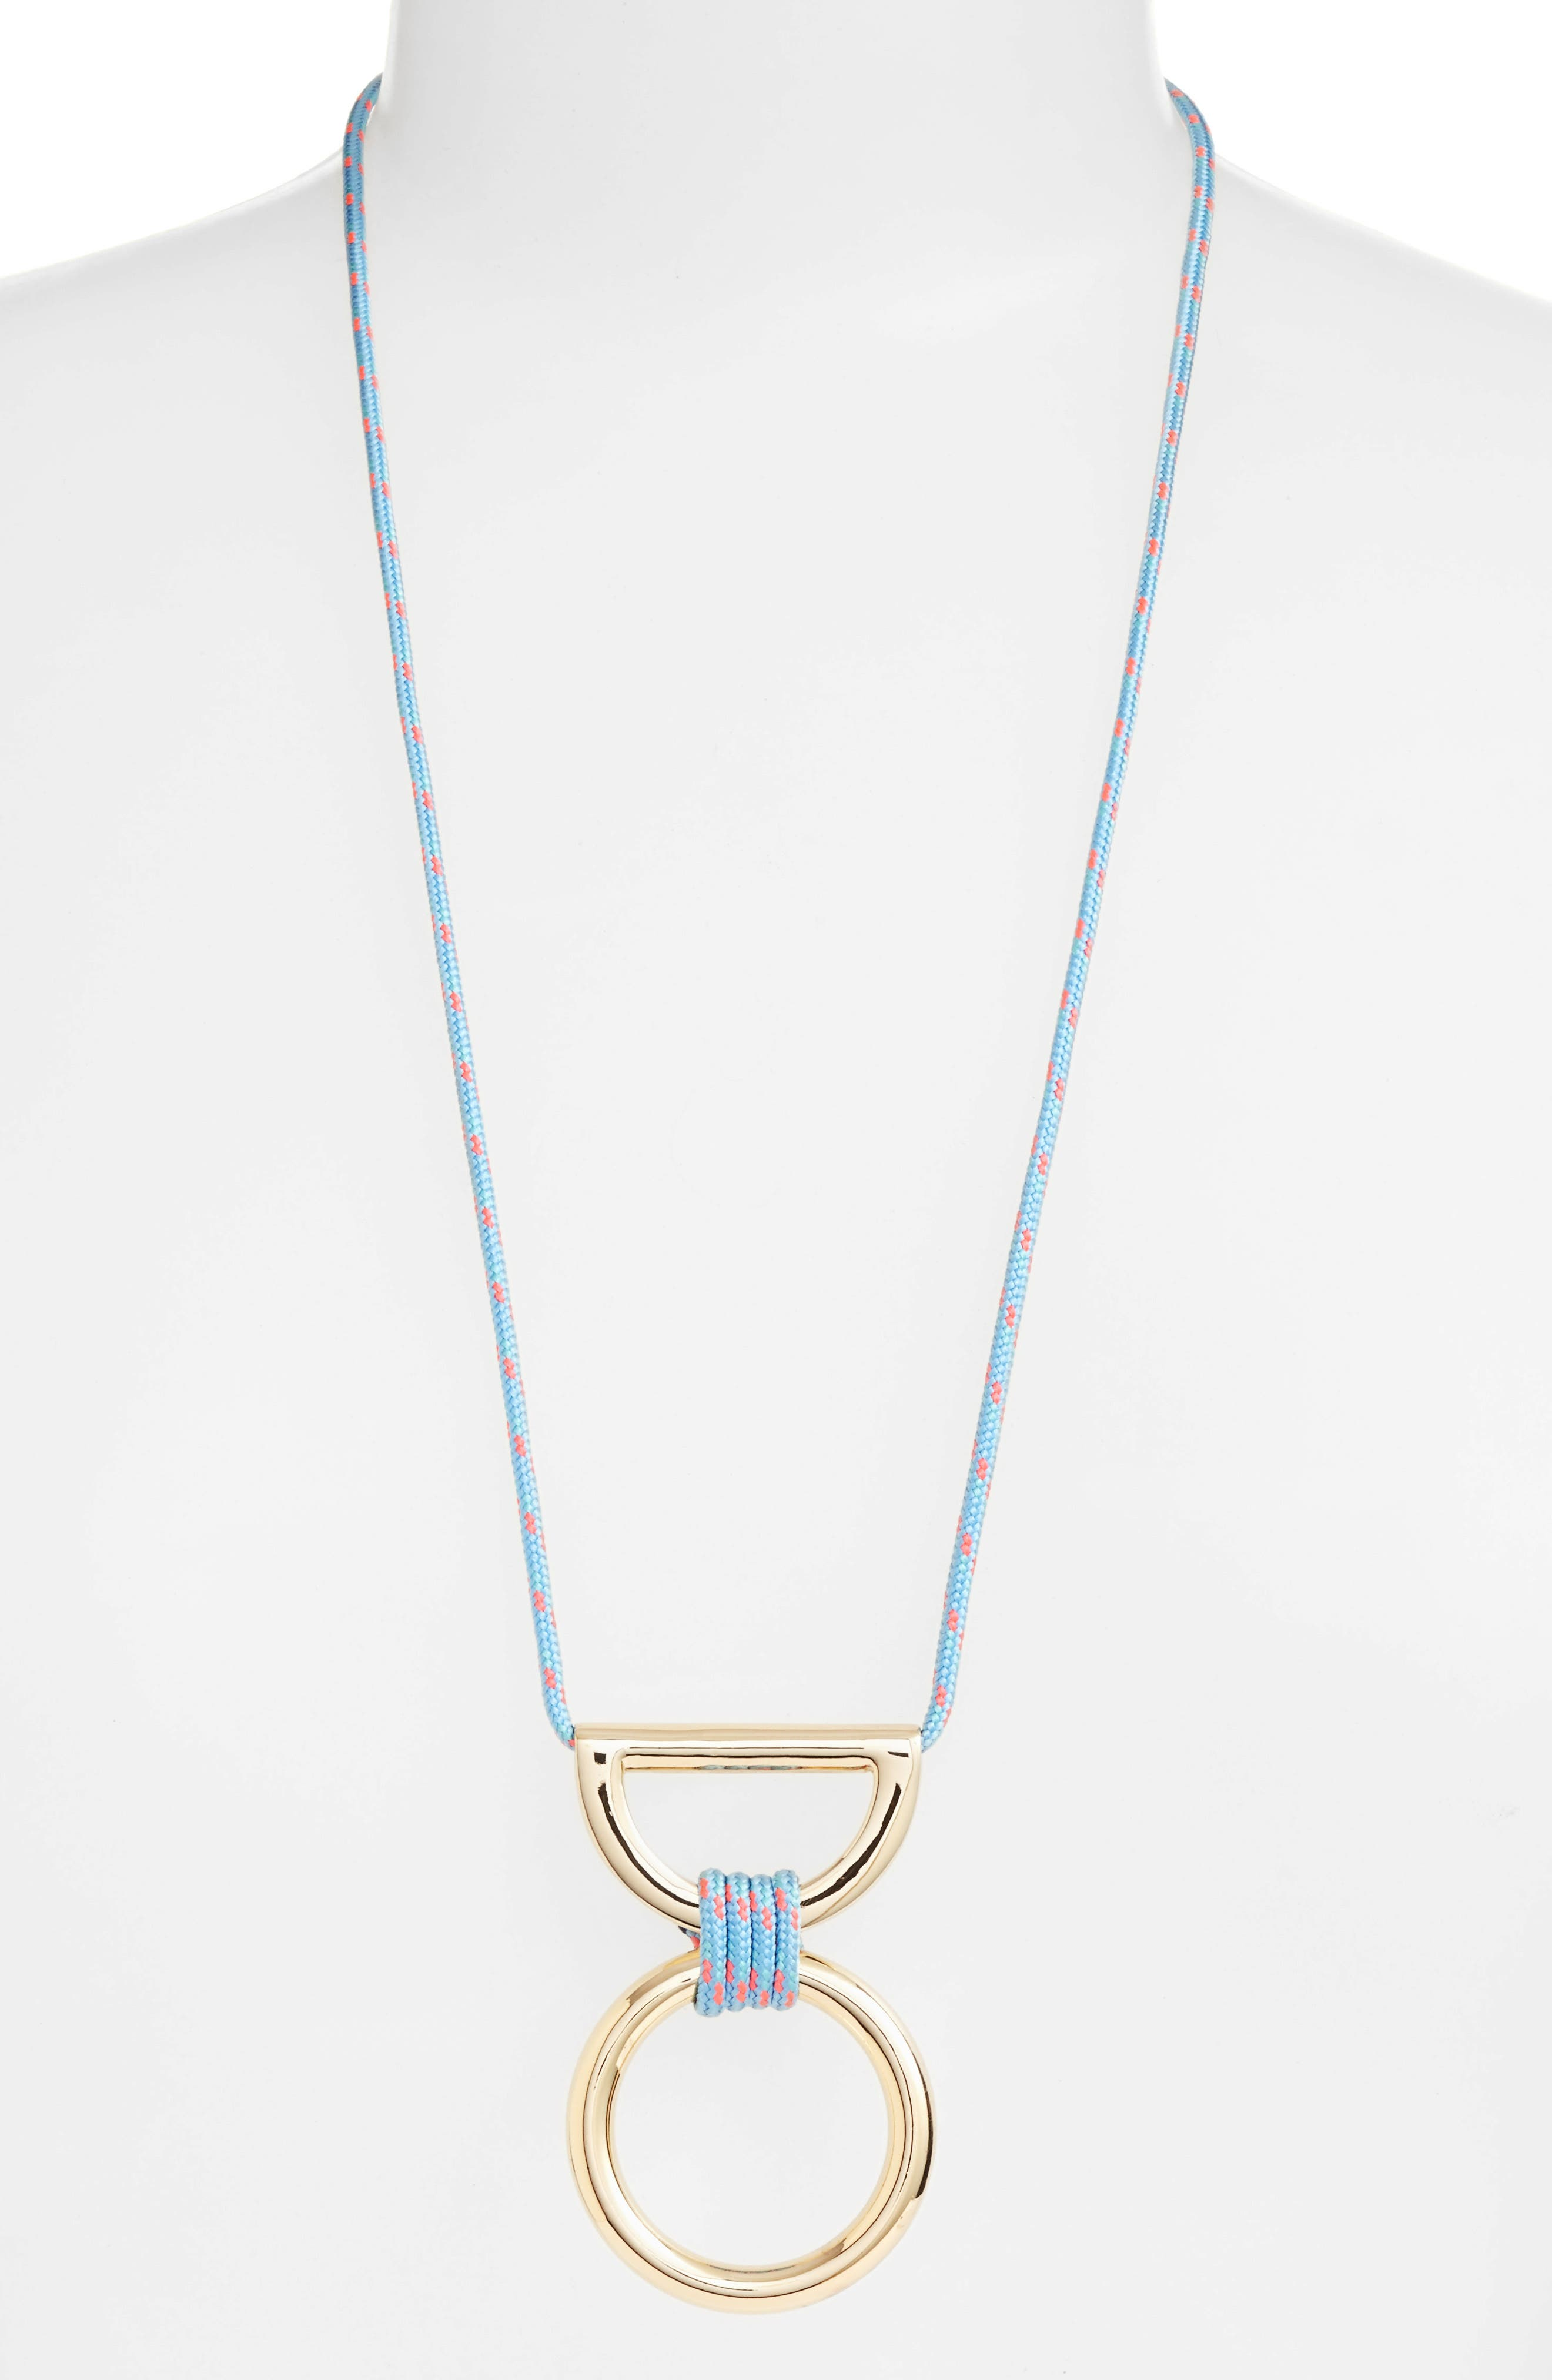 Climbing Rope Pendant Necklace,                         Main,                         color, Turquoise / Gold